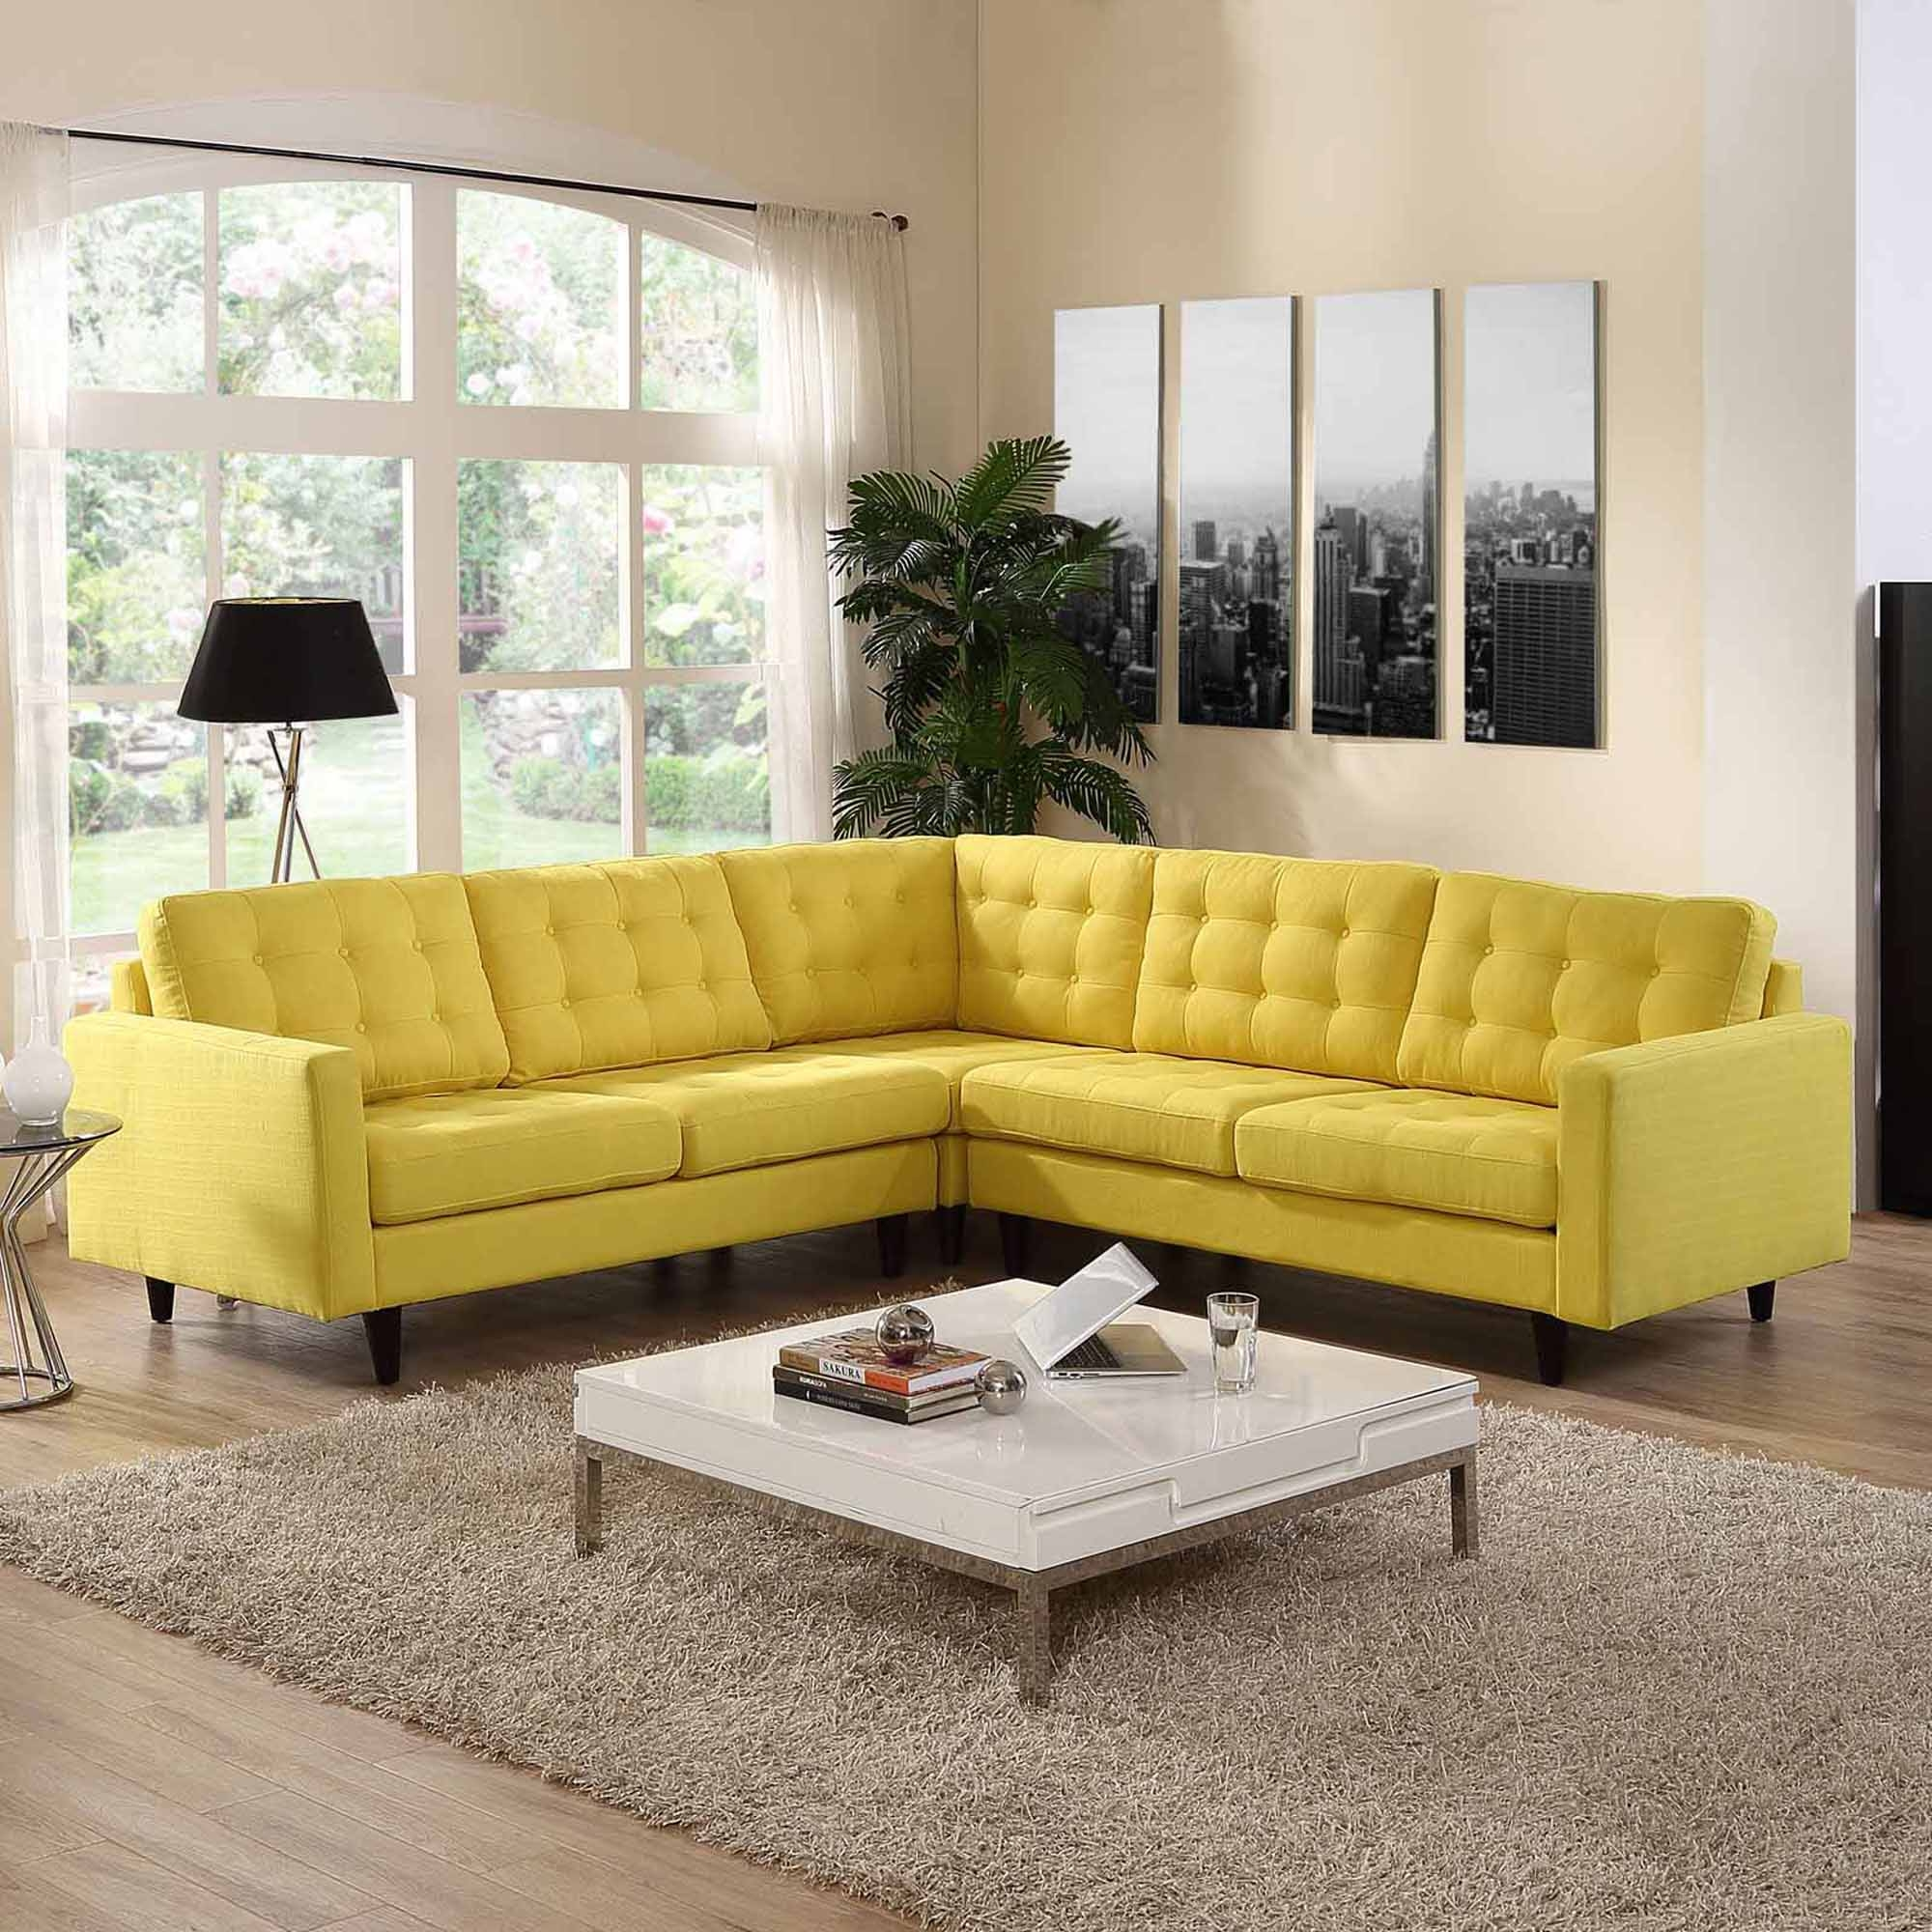 Colorful Sectional Sofas Cleanupflorida Throughout Colorful Sectional Sofas (#4 of 12)